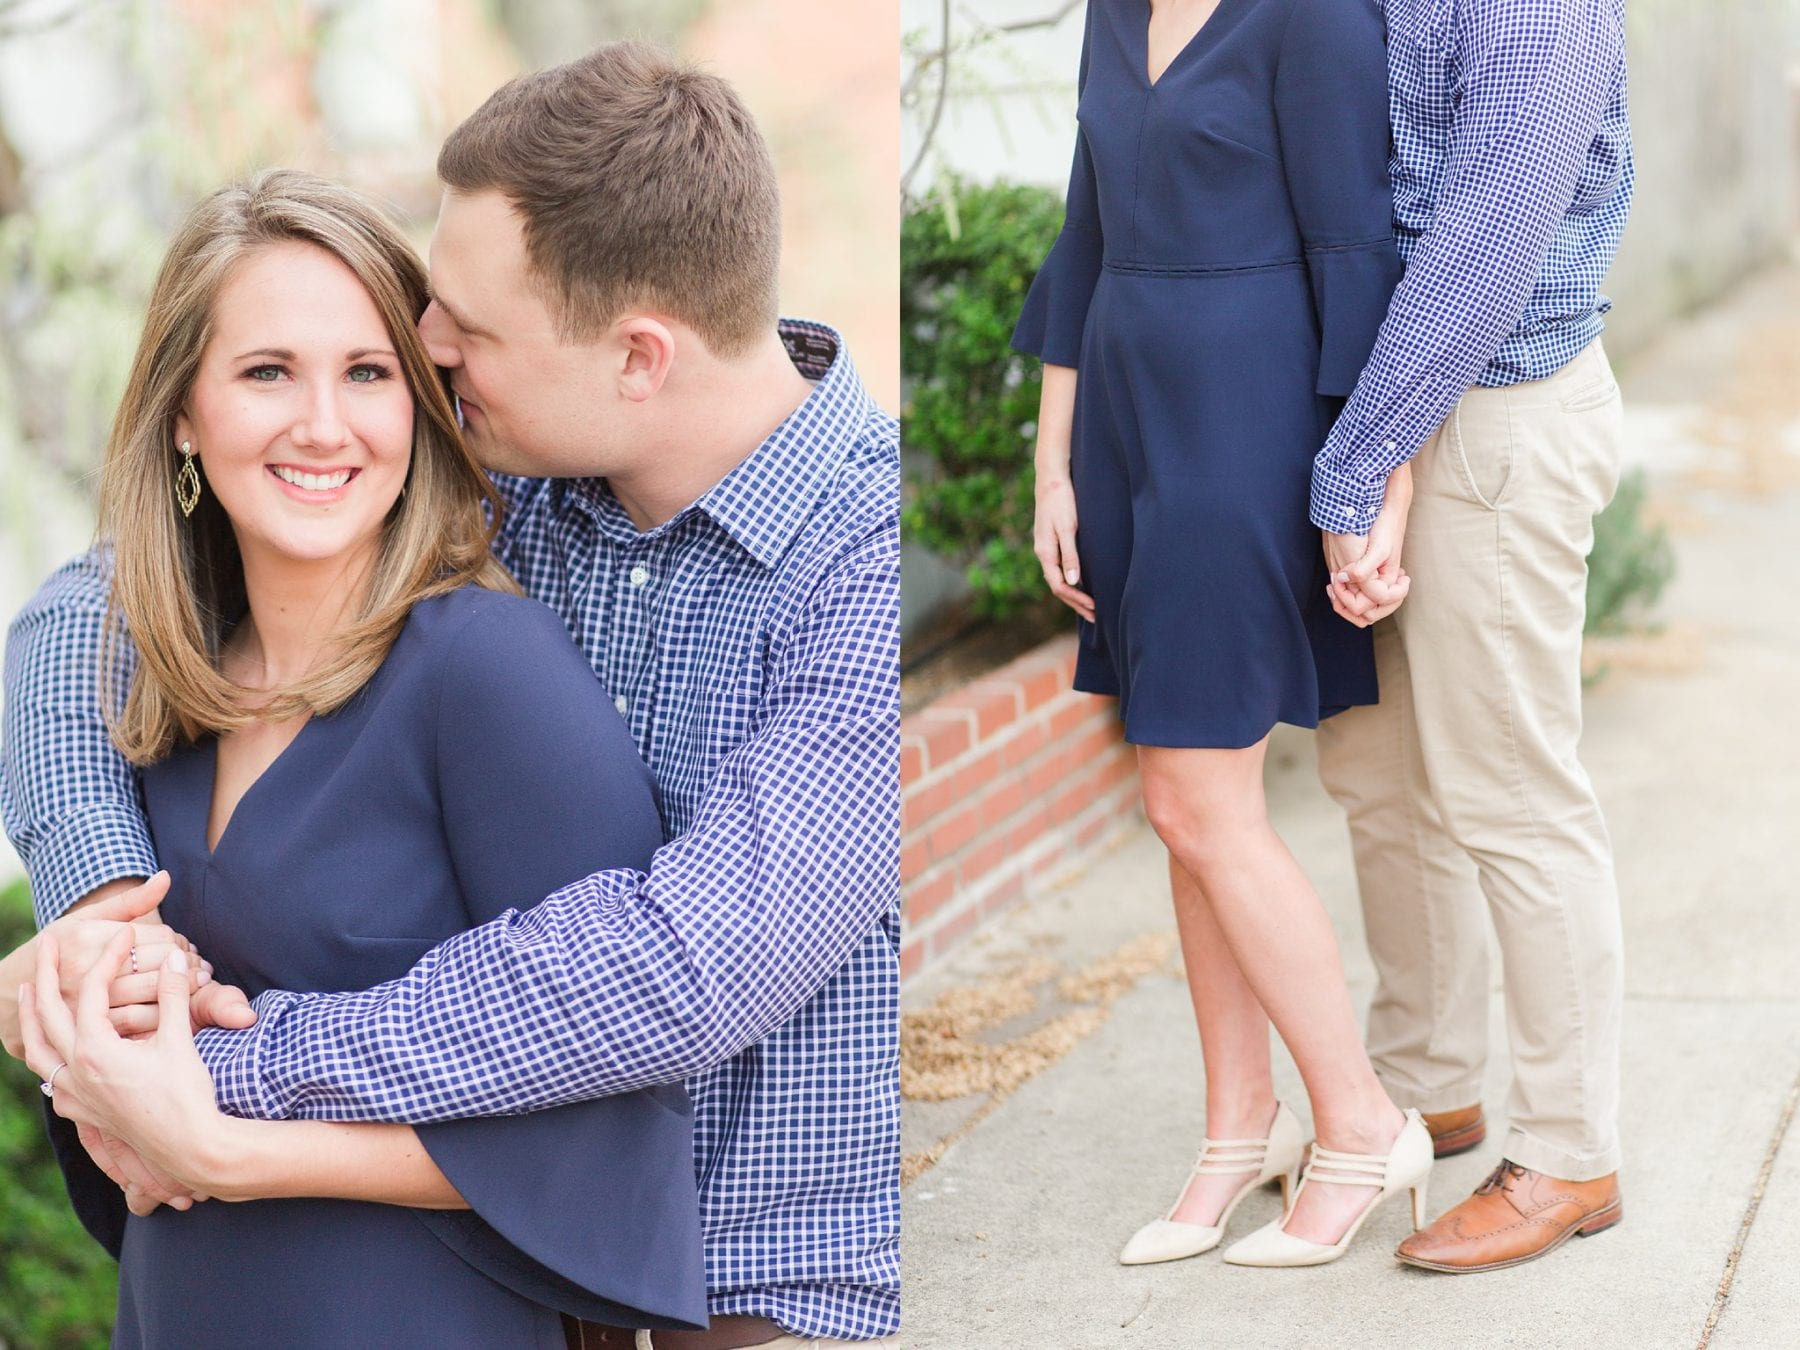 Springtime Old Town Alexandria Engagement Session Matt & Maxie Megan Kelsey Photography-155.jpg